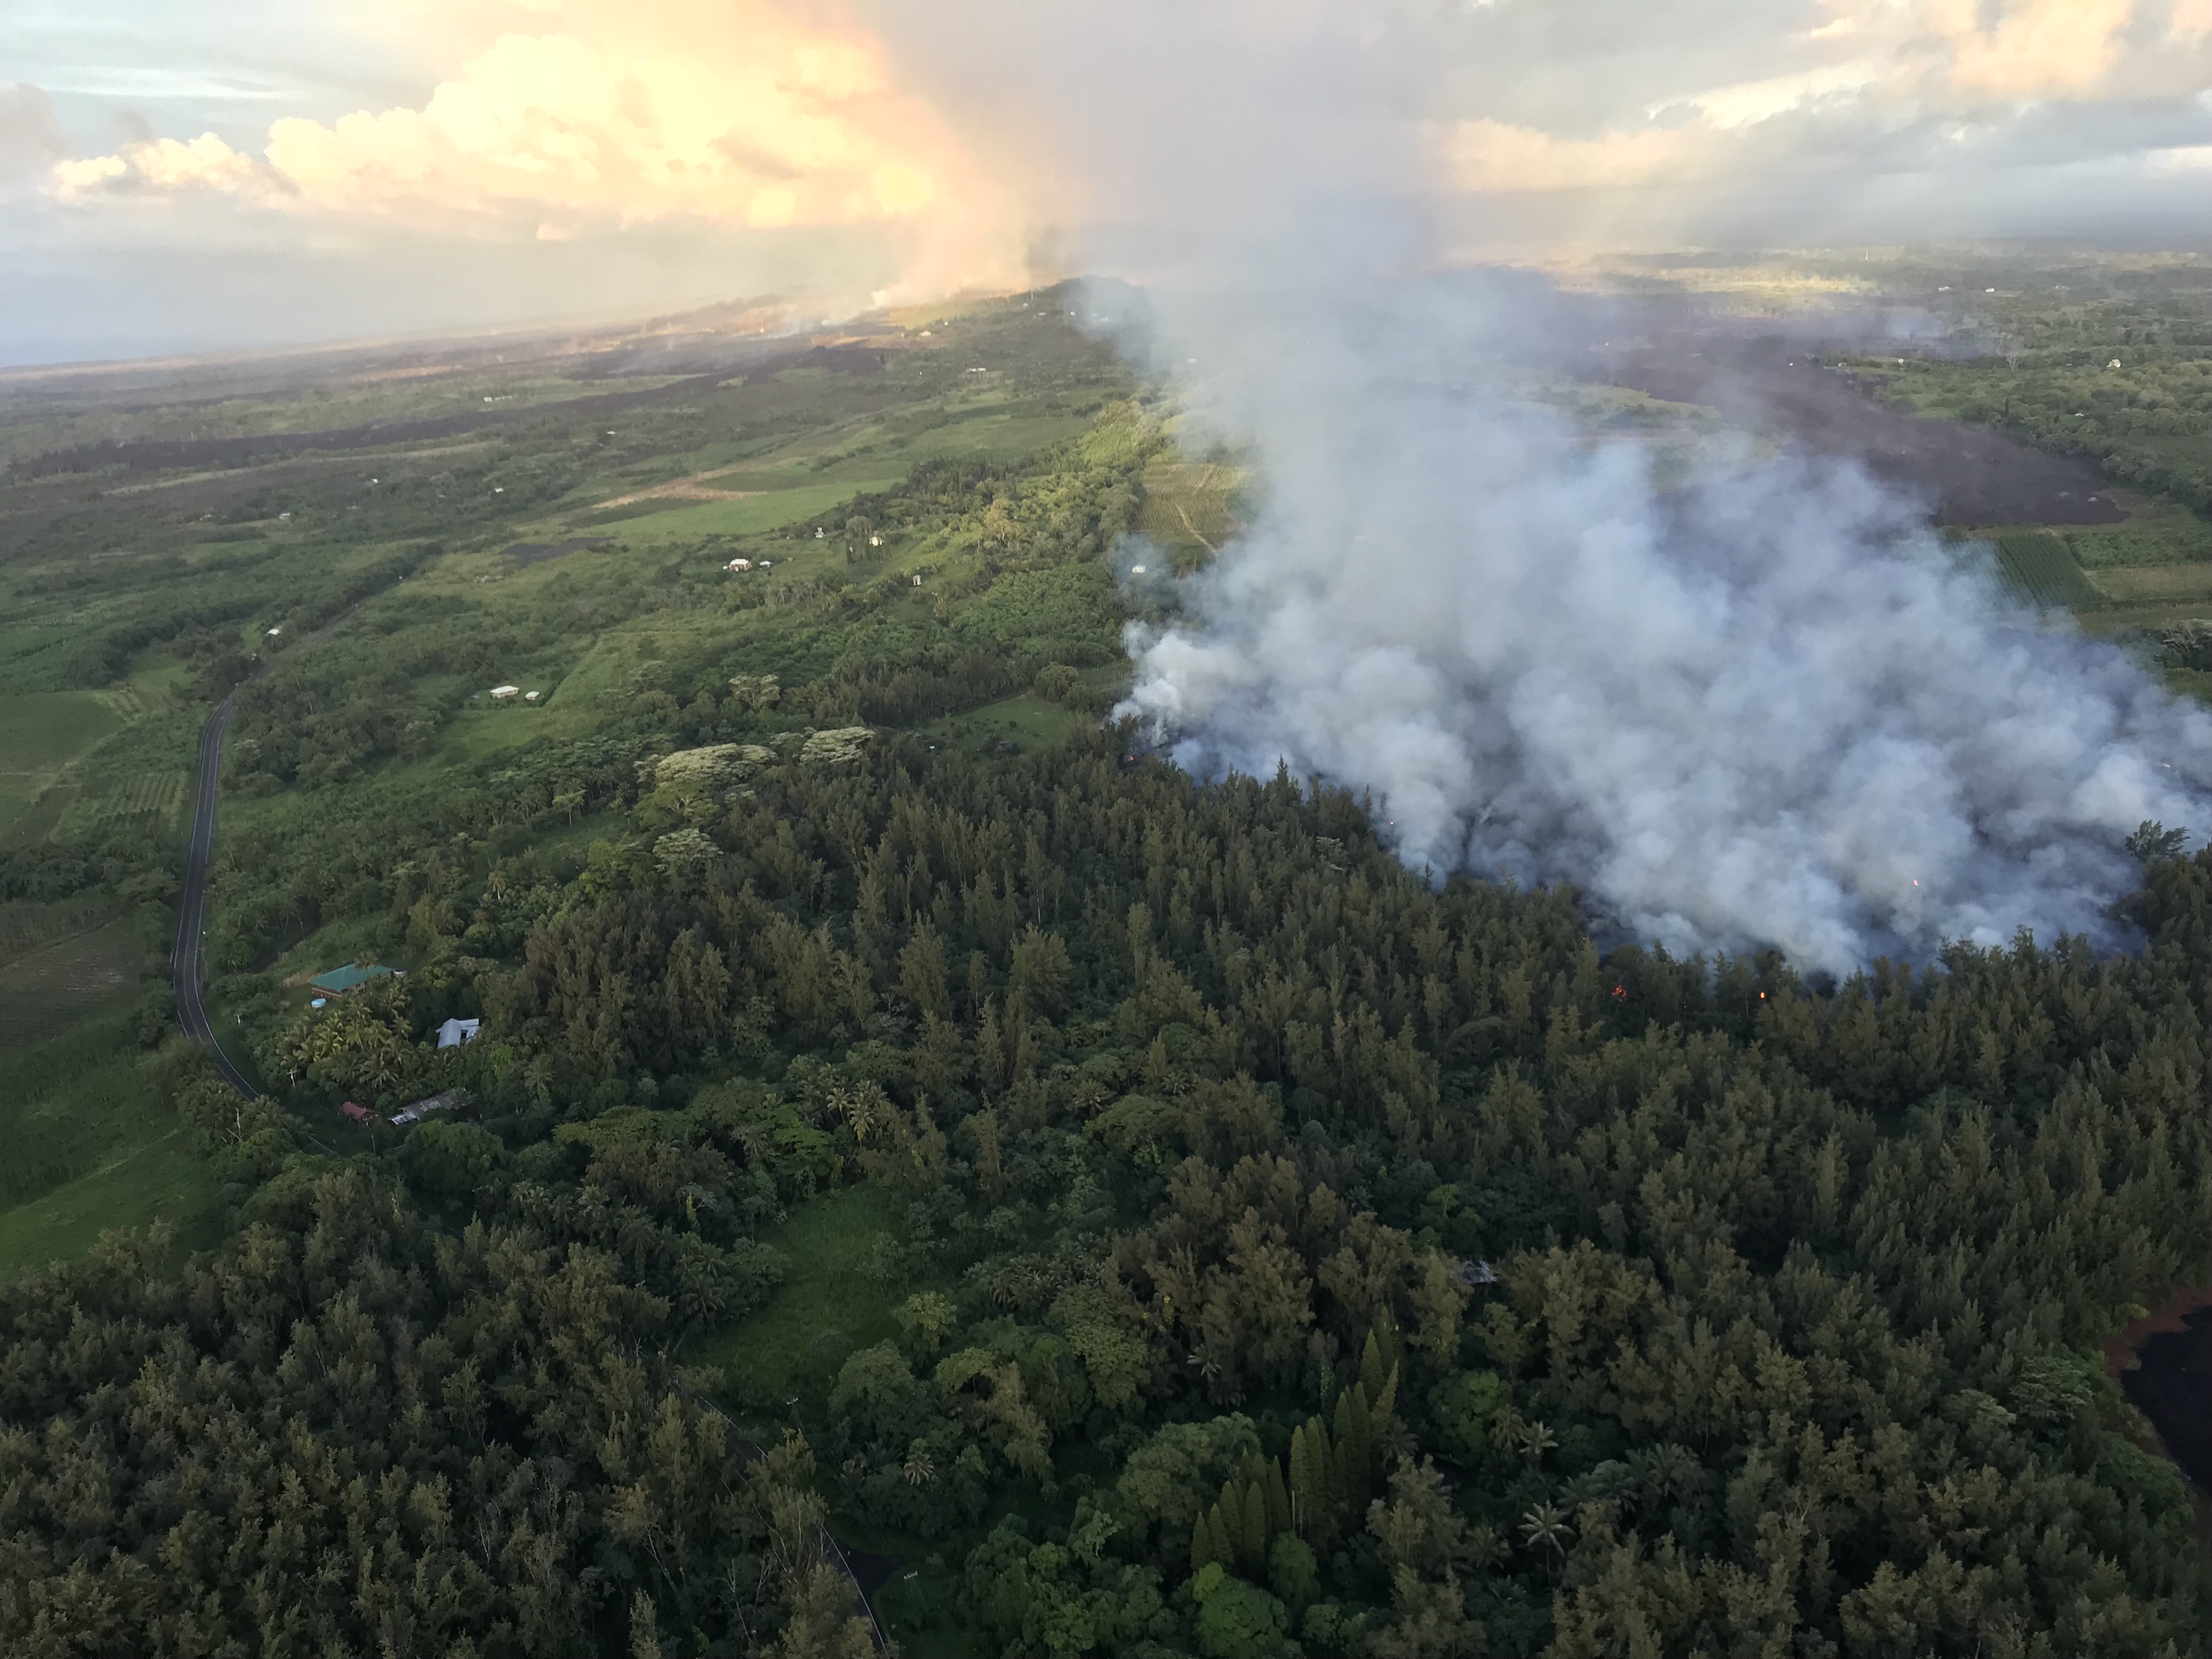 Today's Image of the Day comes from the U.S. Geological Survey (USGS) and features a look at the Kilauea volcano's Fissure 8 lava flow continuing to push northeast.